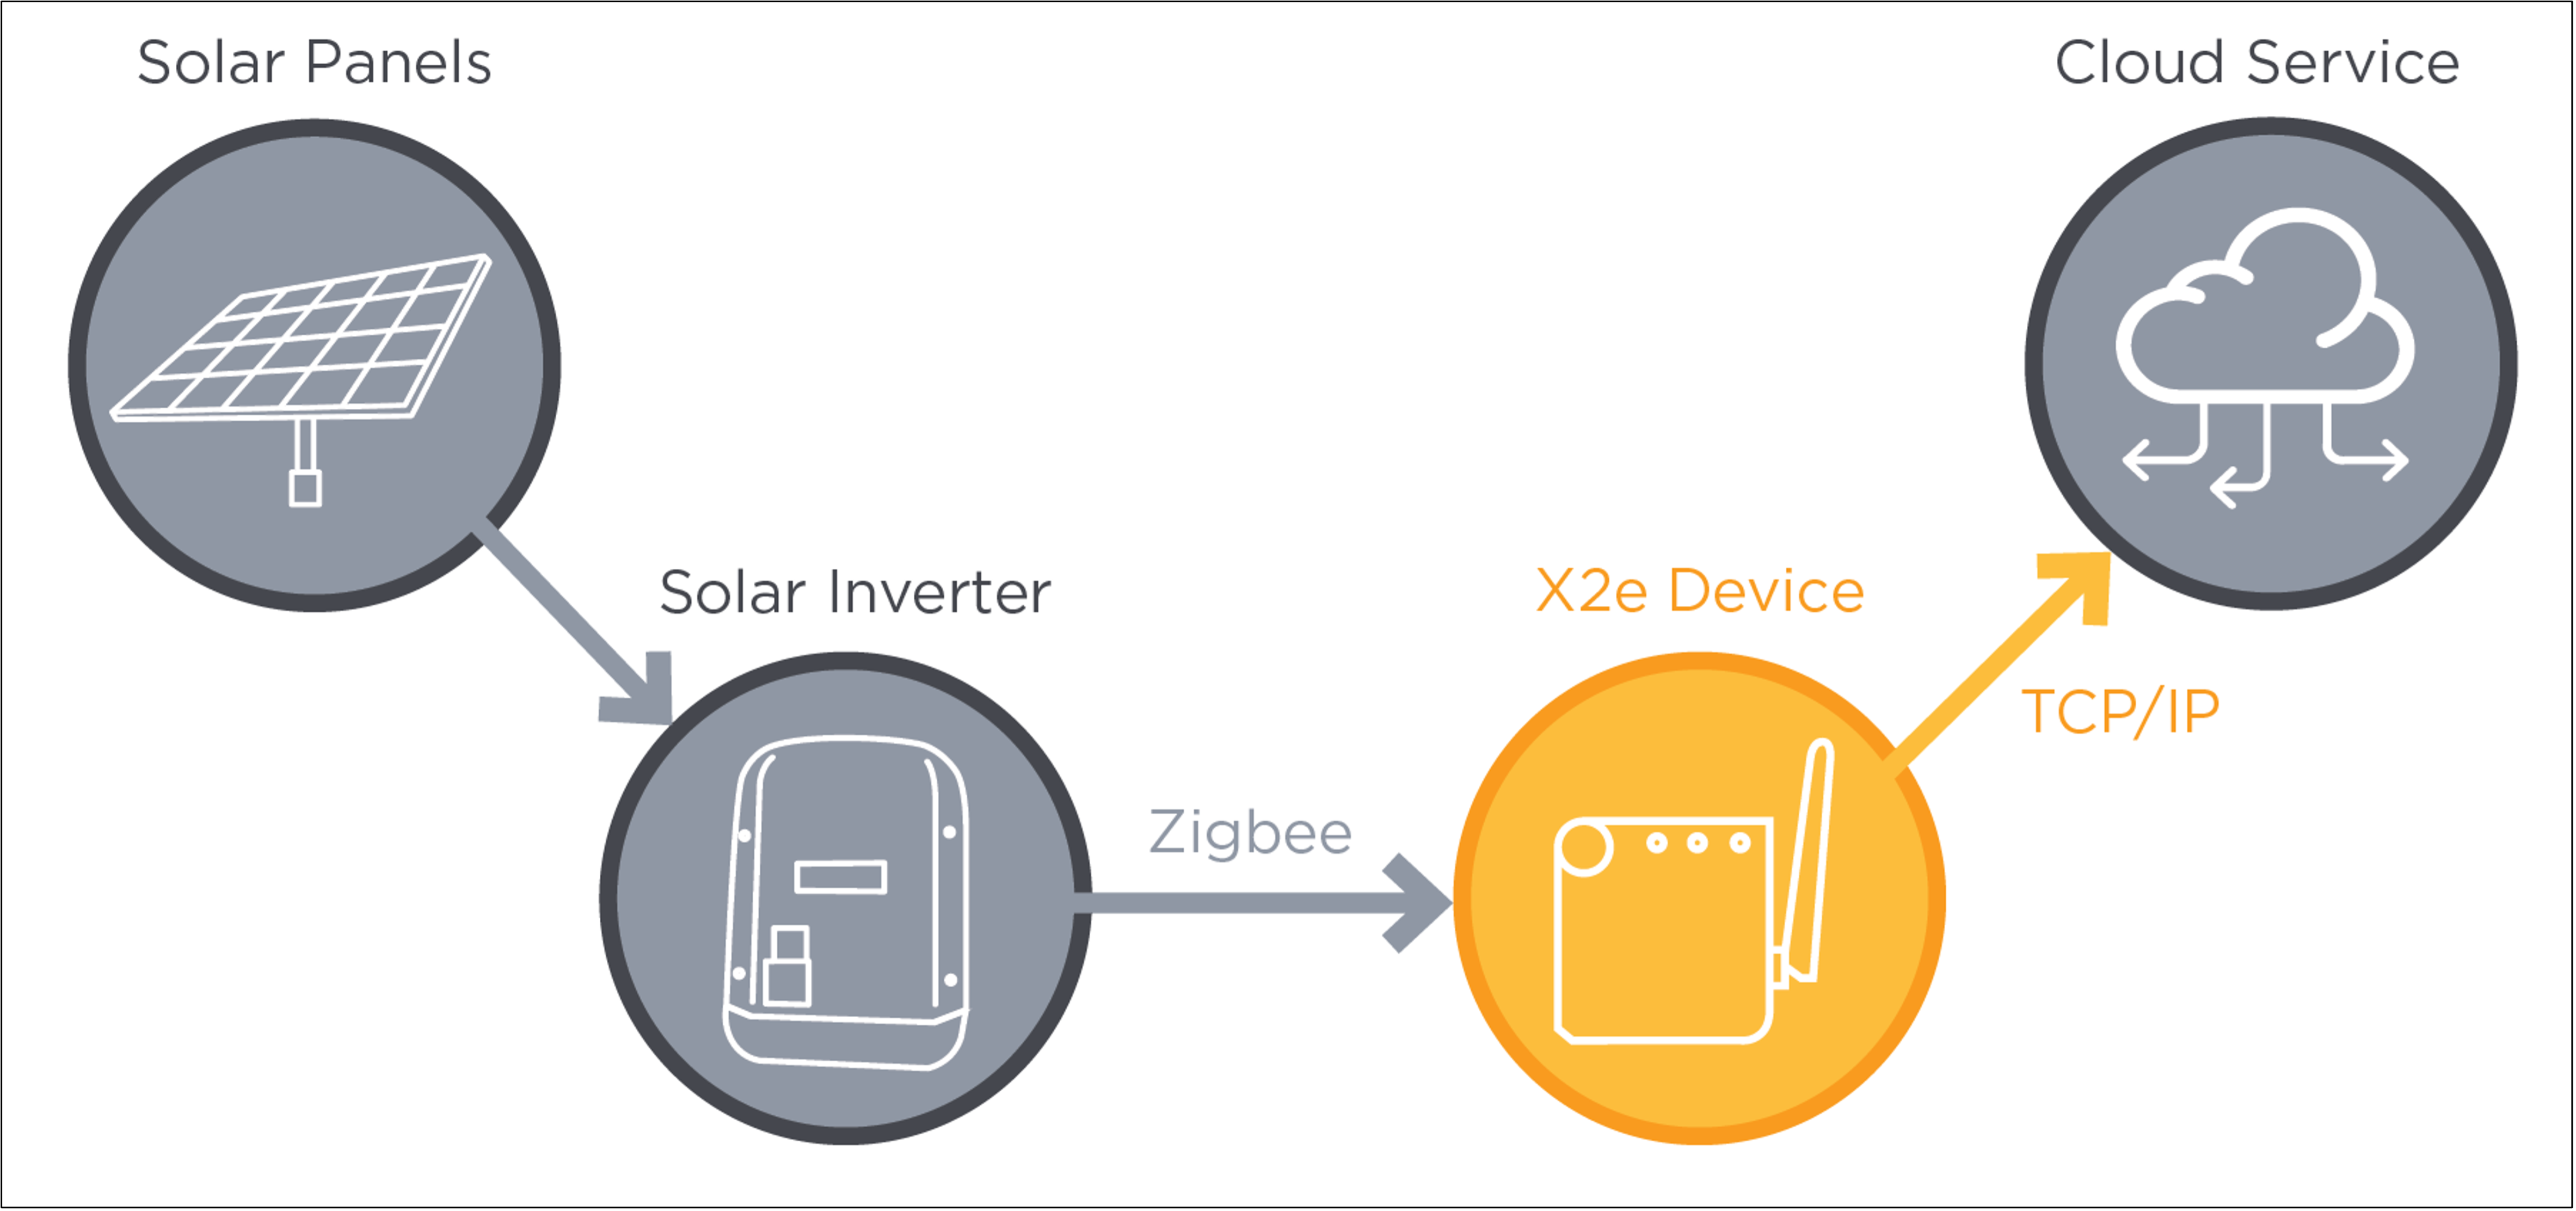 Shining a Light on SolarCity: Practical Exploitation of the X2e IoT Device (Part One)